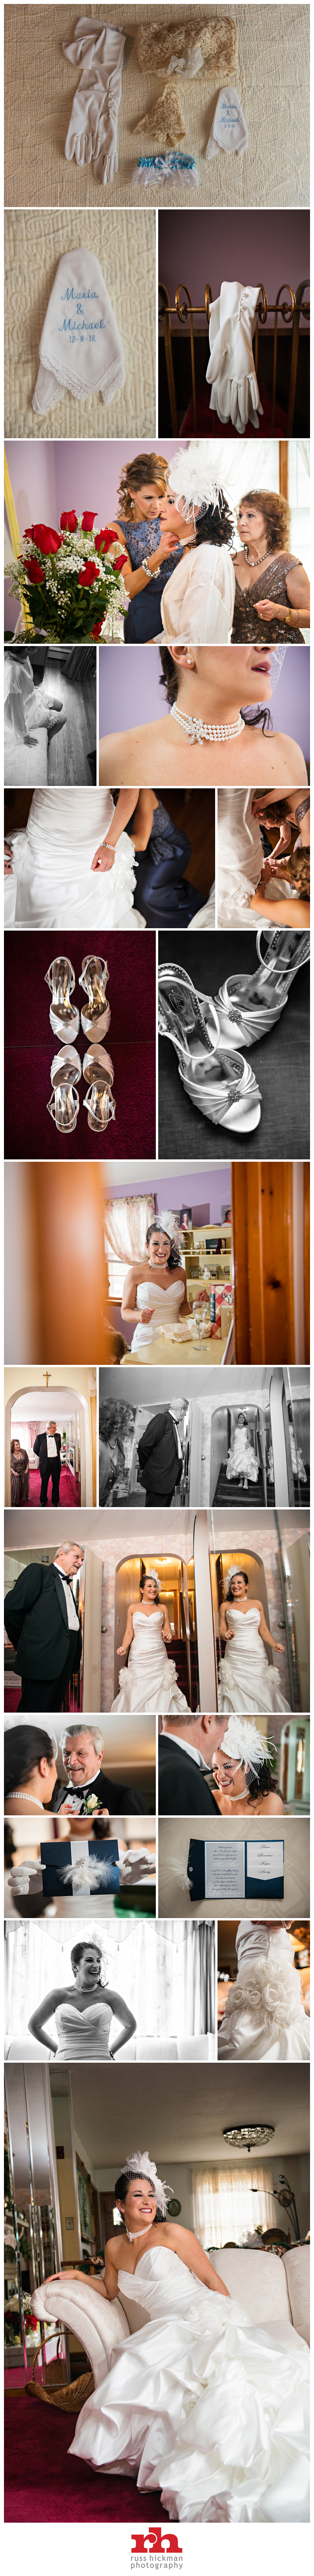 Philadelphia Wedding Photographer MMWB0002